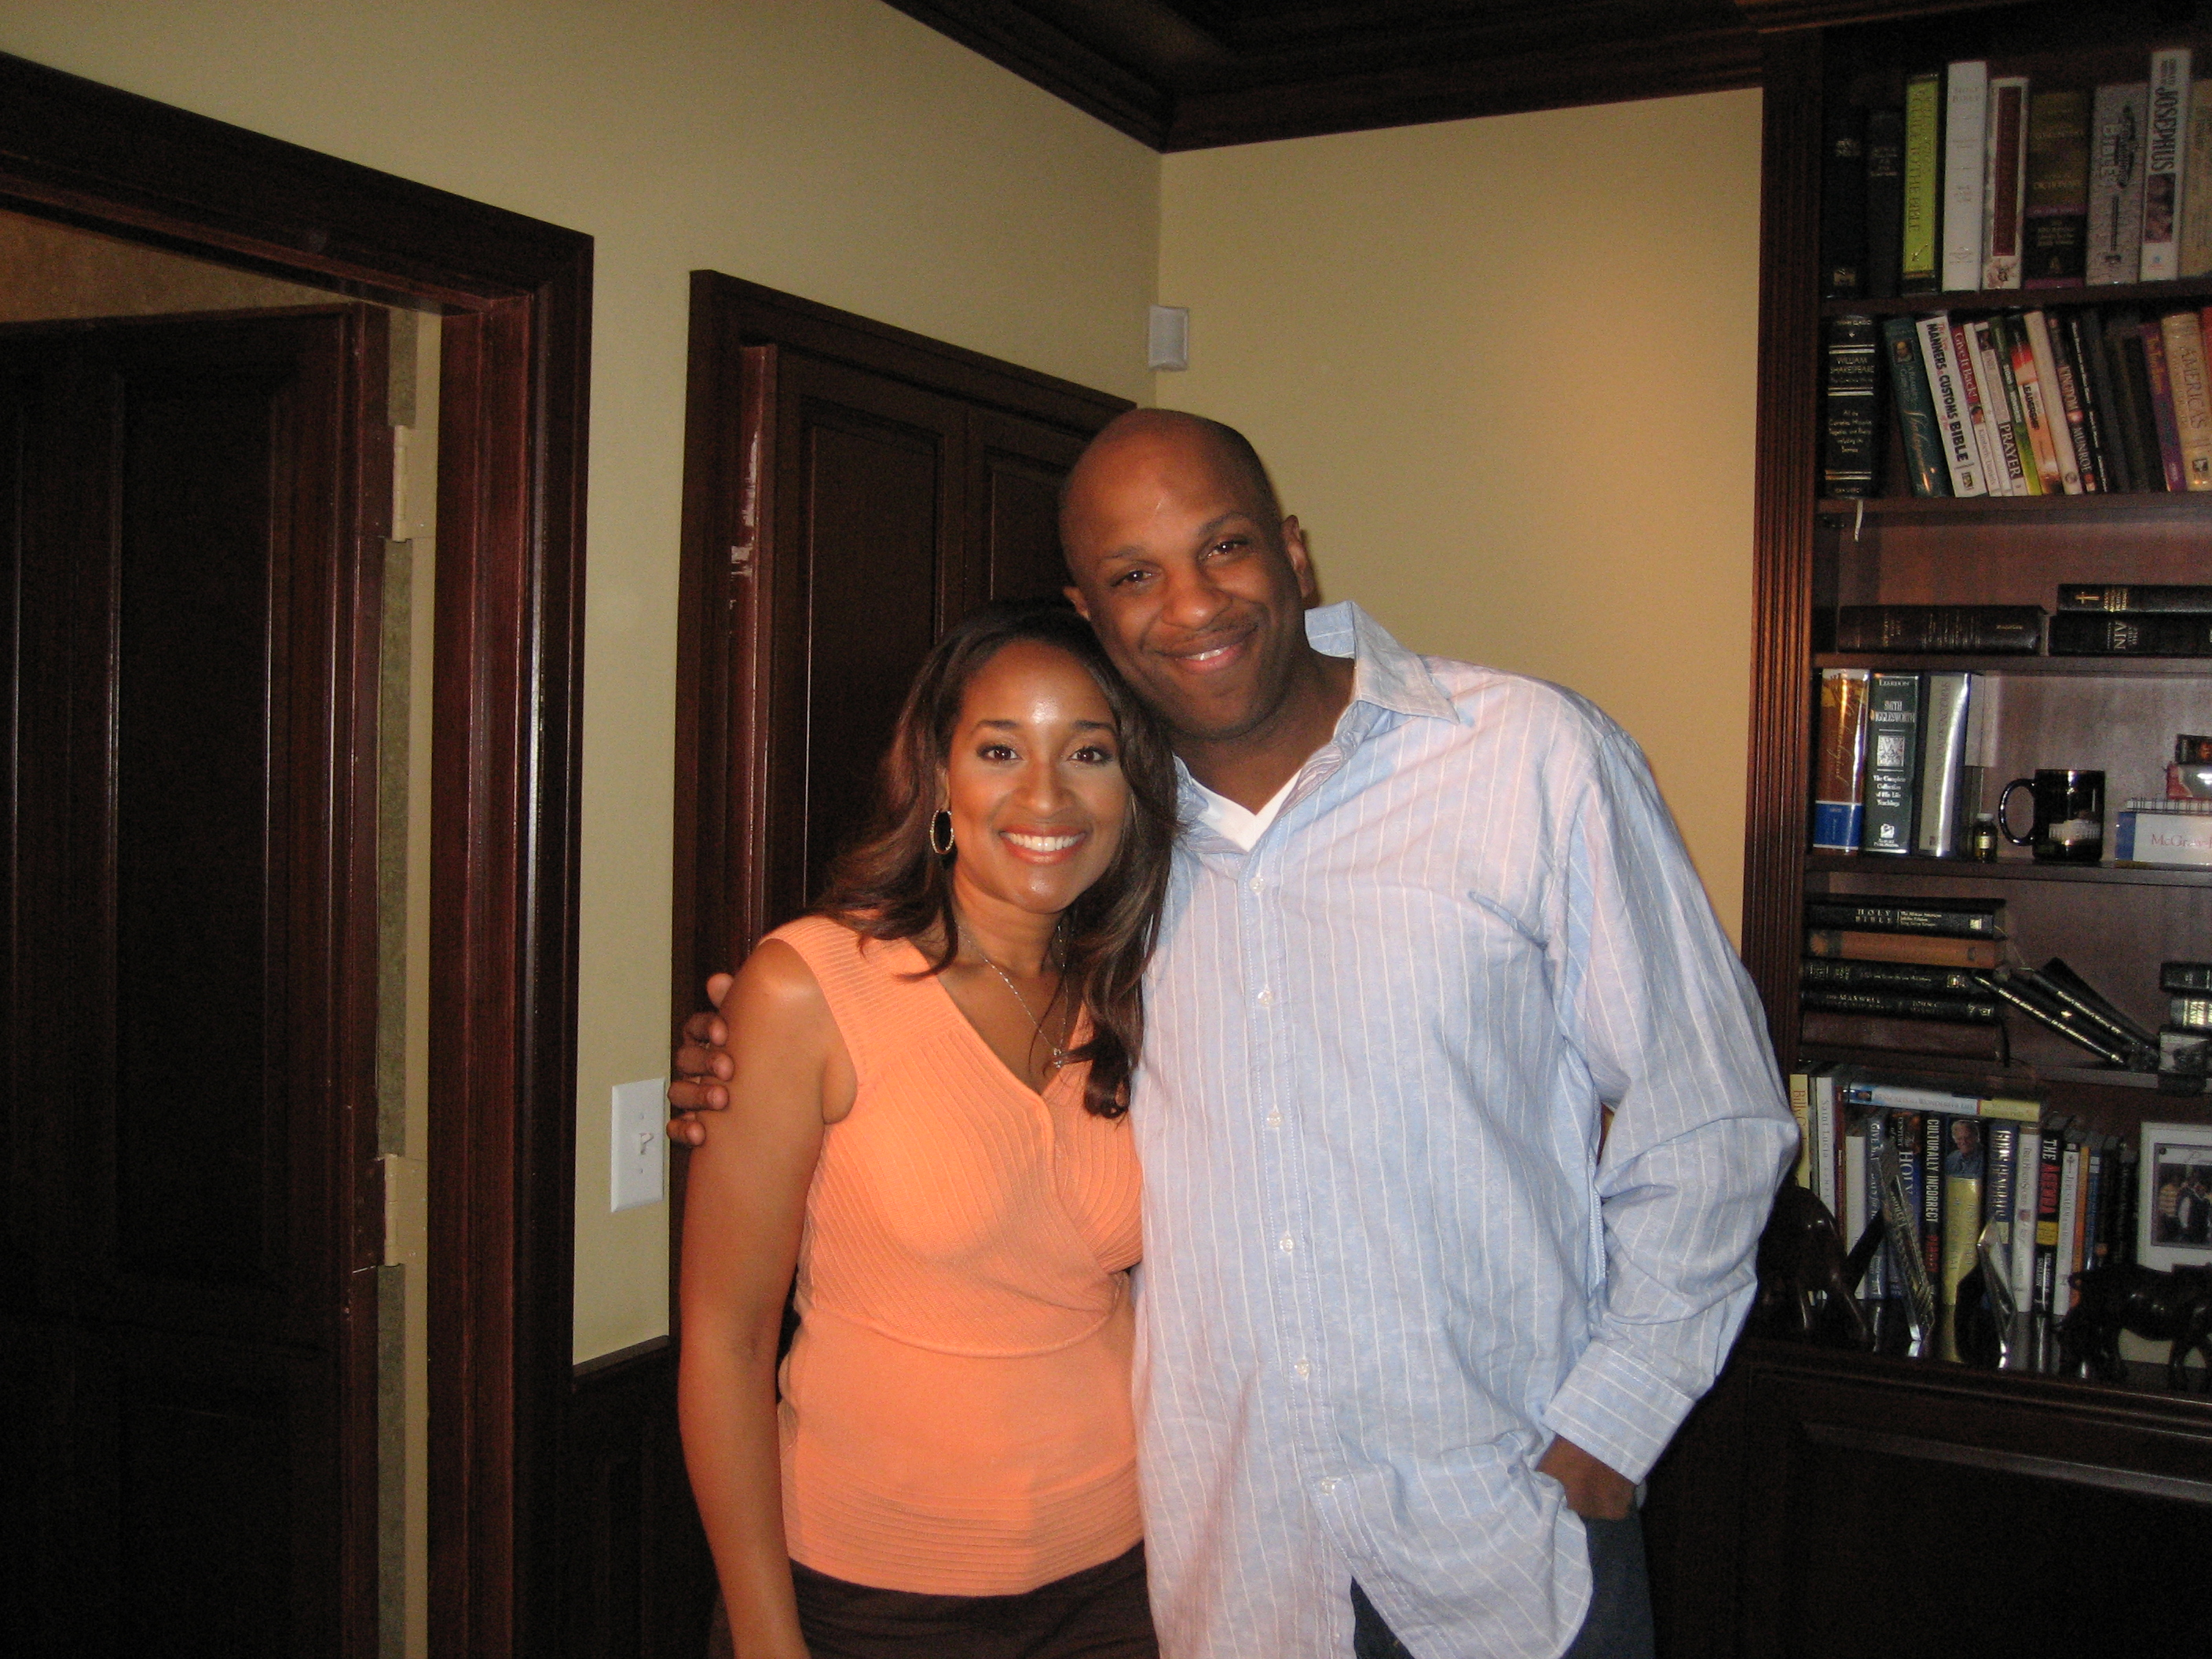 Grammy Award Winner Donnie McClurkin